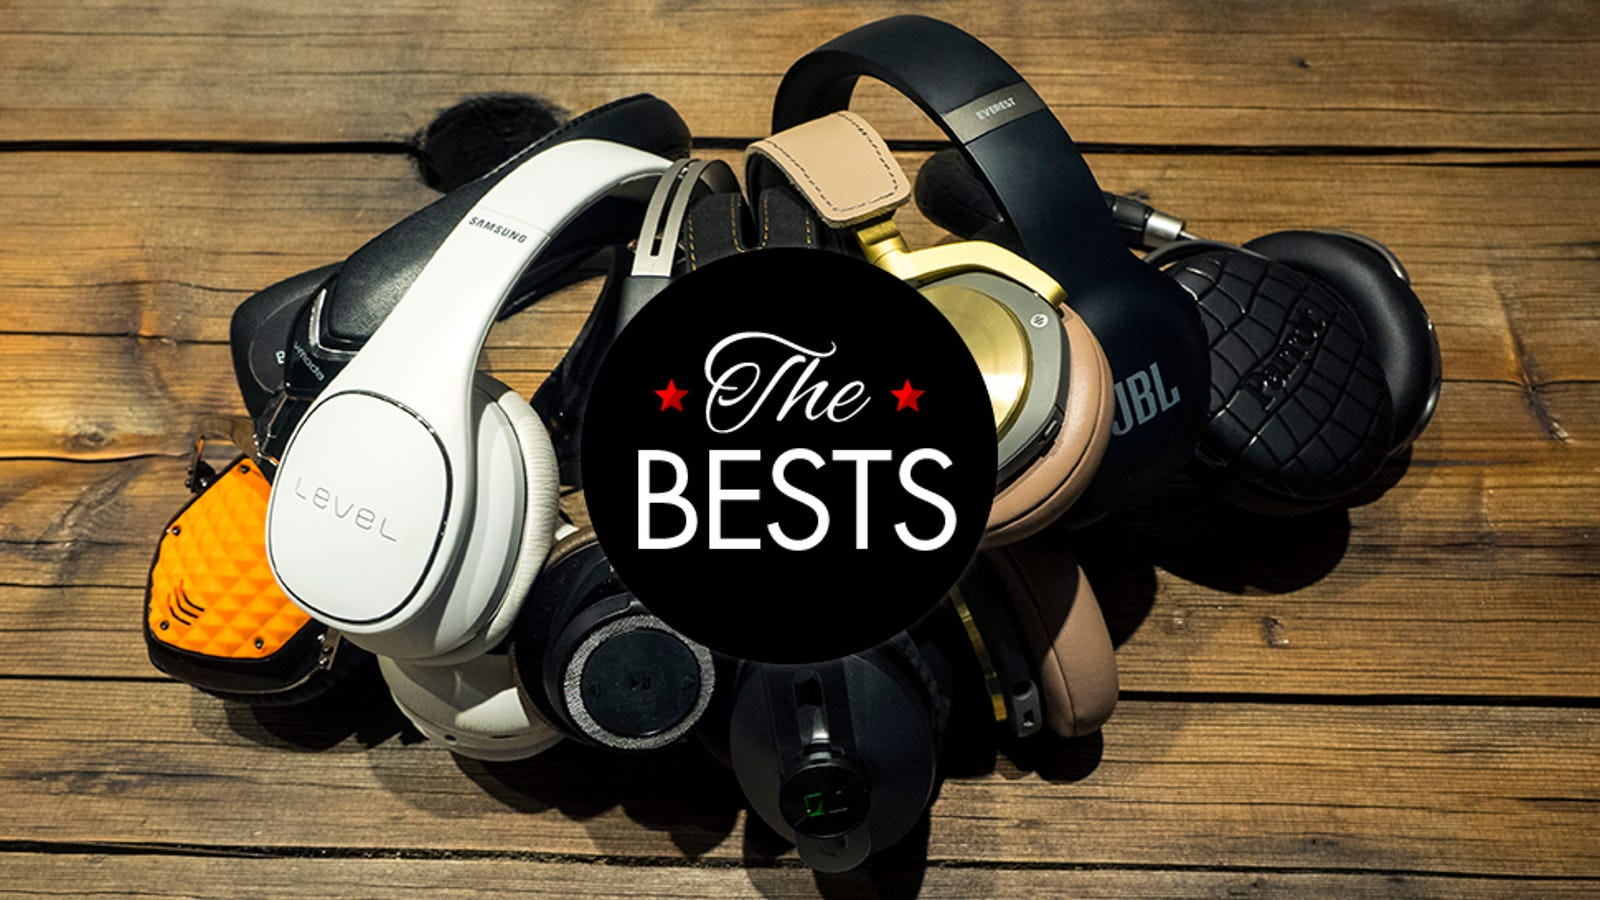 philips earbuds for ipod - The Best Wireless Headphones For Every Discerning Ear